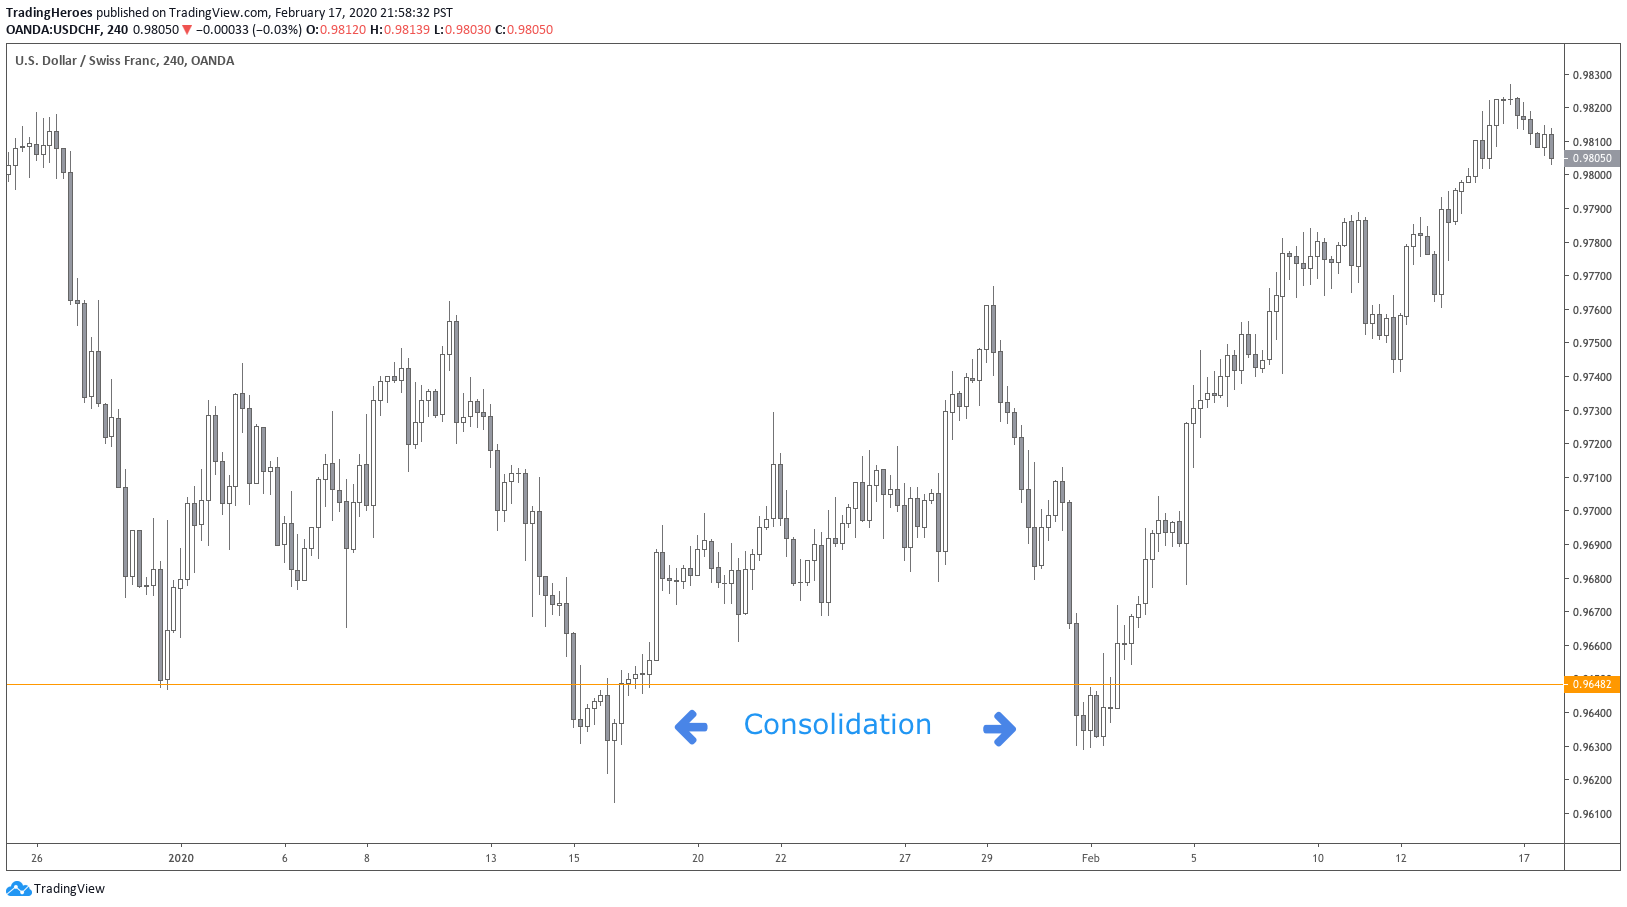 Consolidation below support level